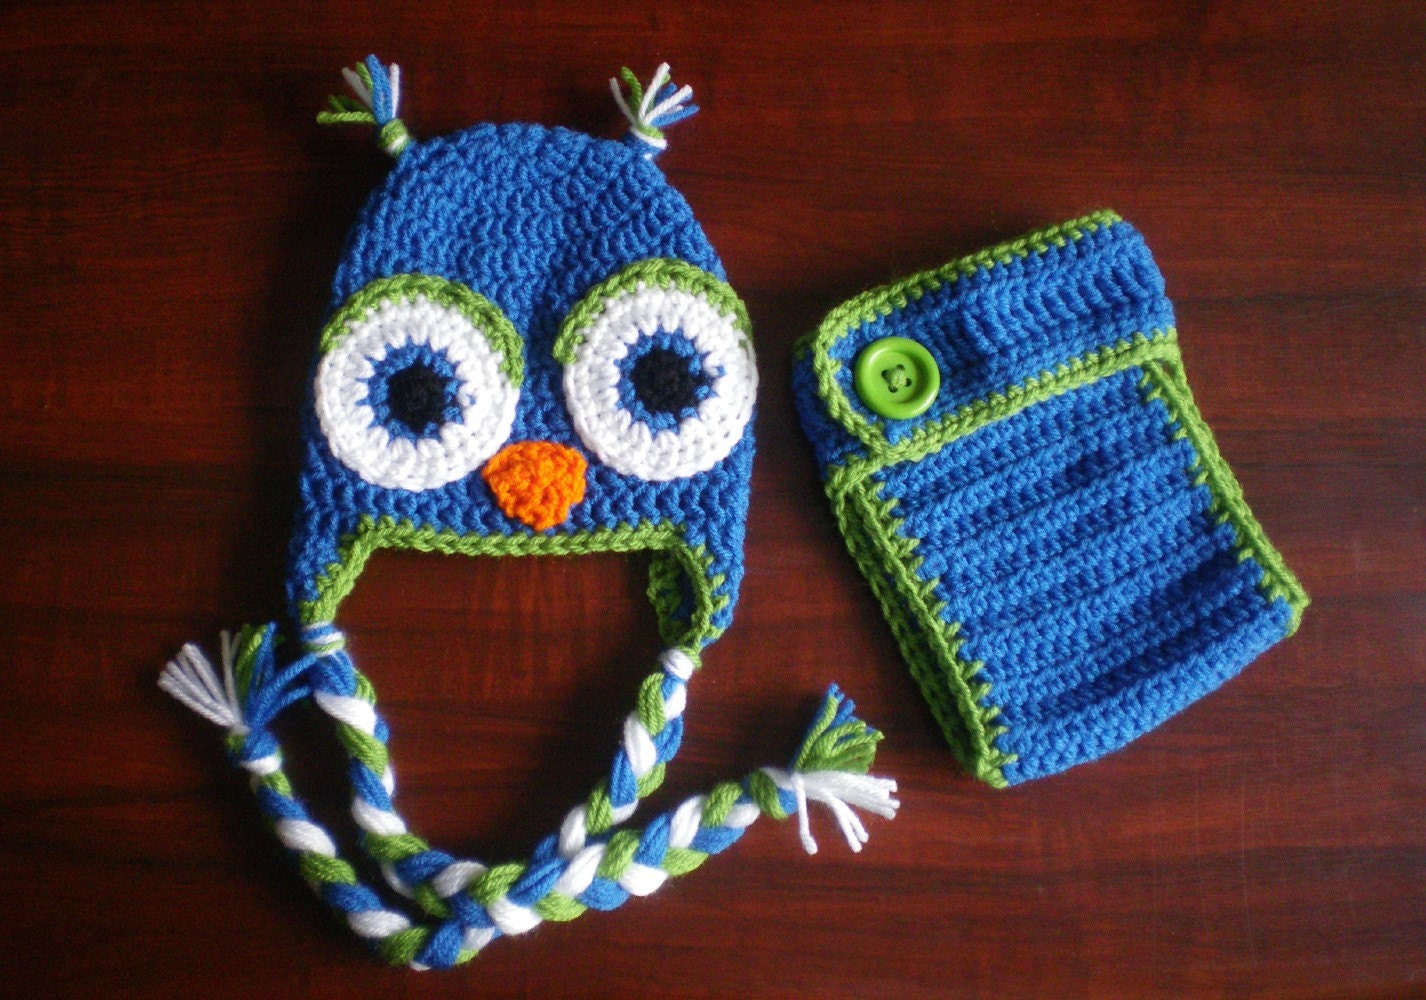 Set- Boys blue and fern green owl hat and diaper cover 0-3 3-6 6-12 month sizes - 2pcs.